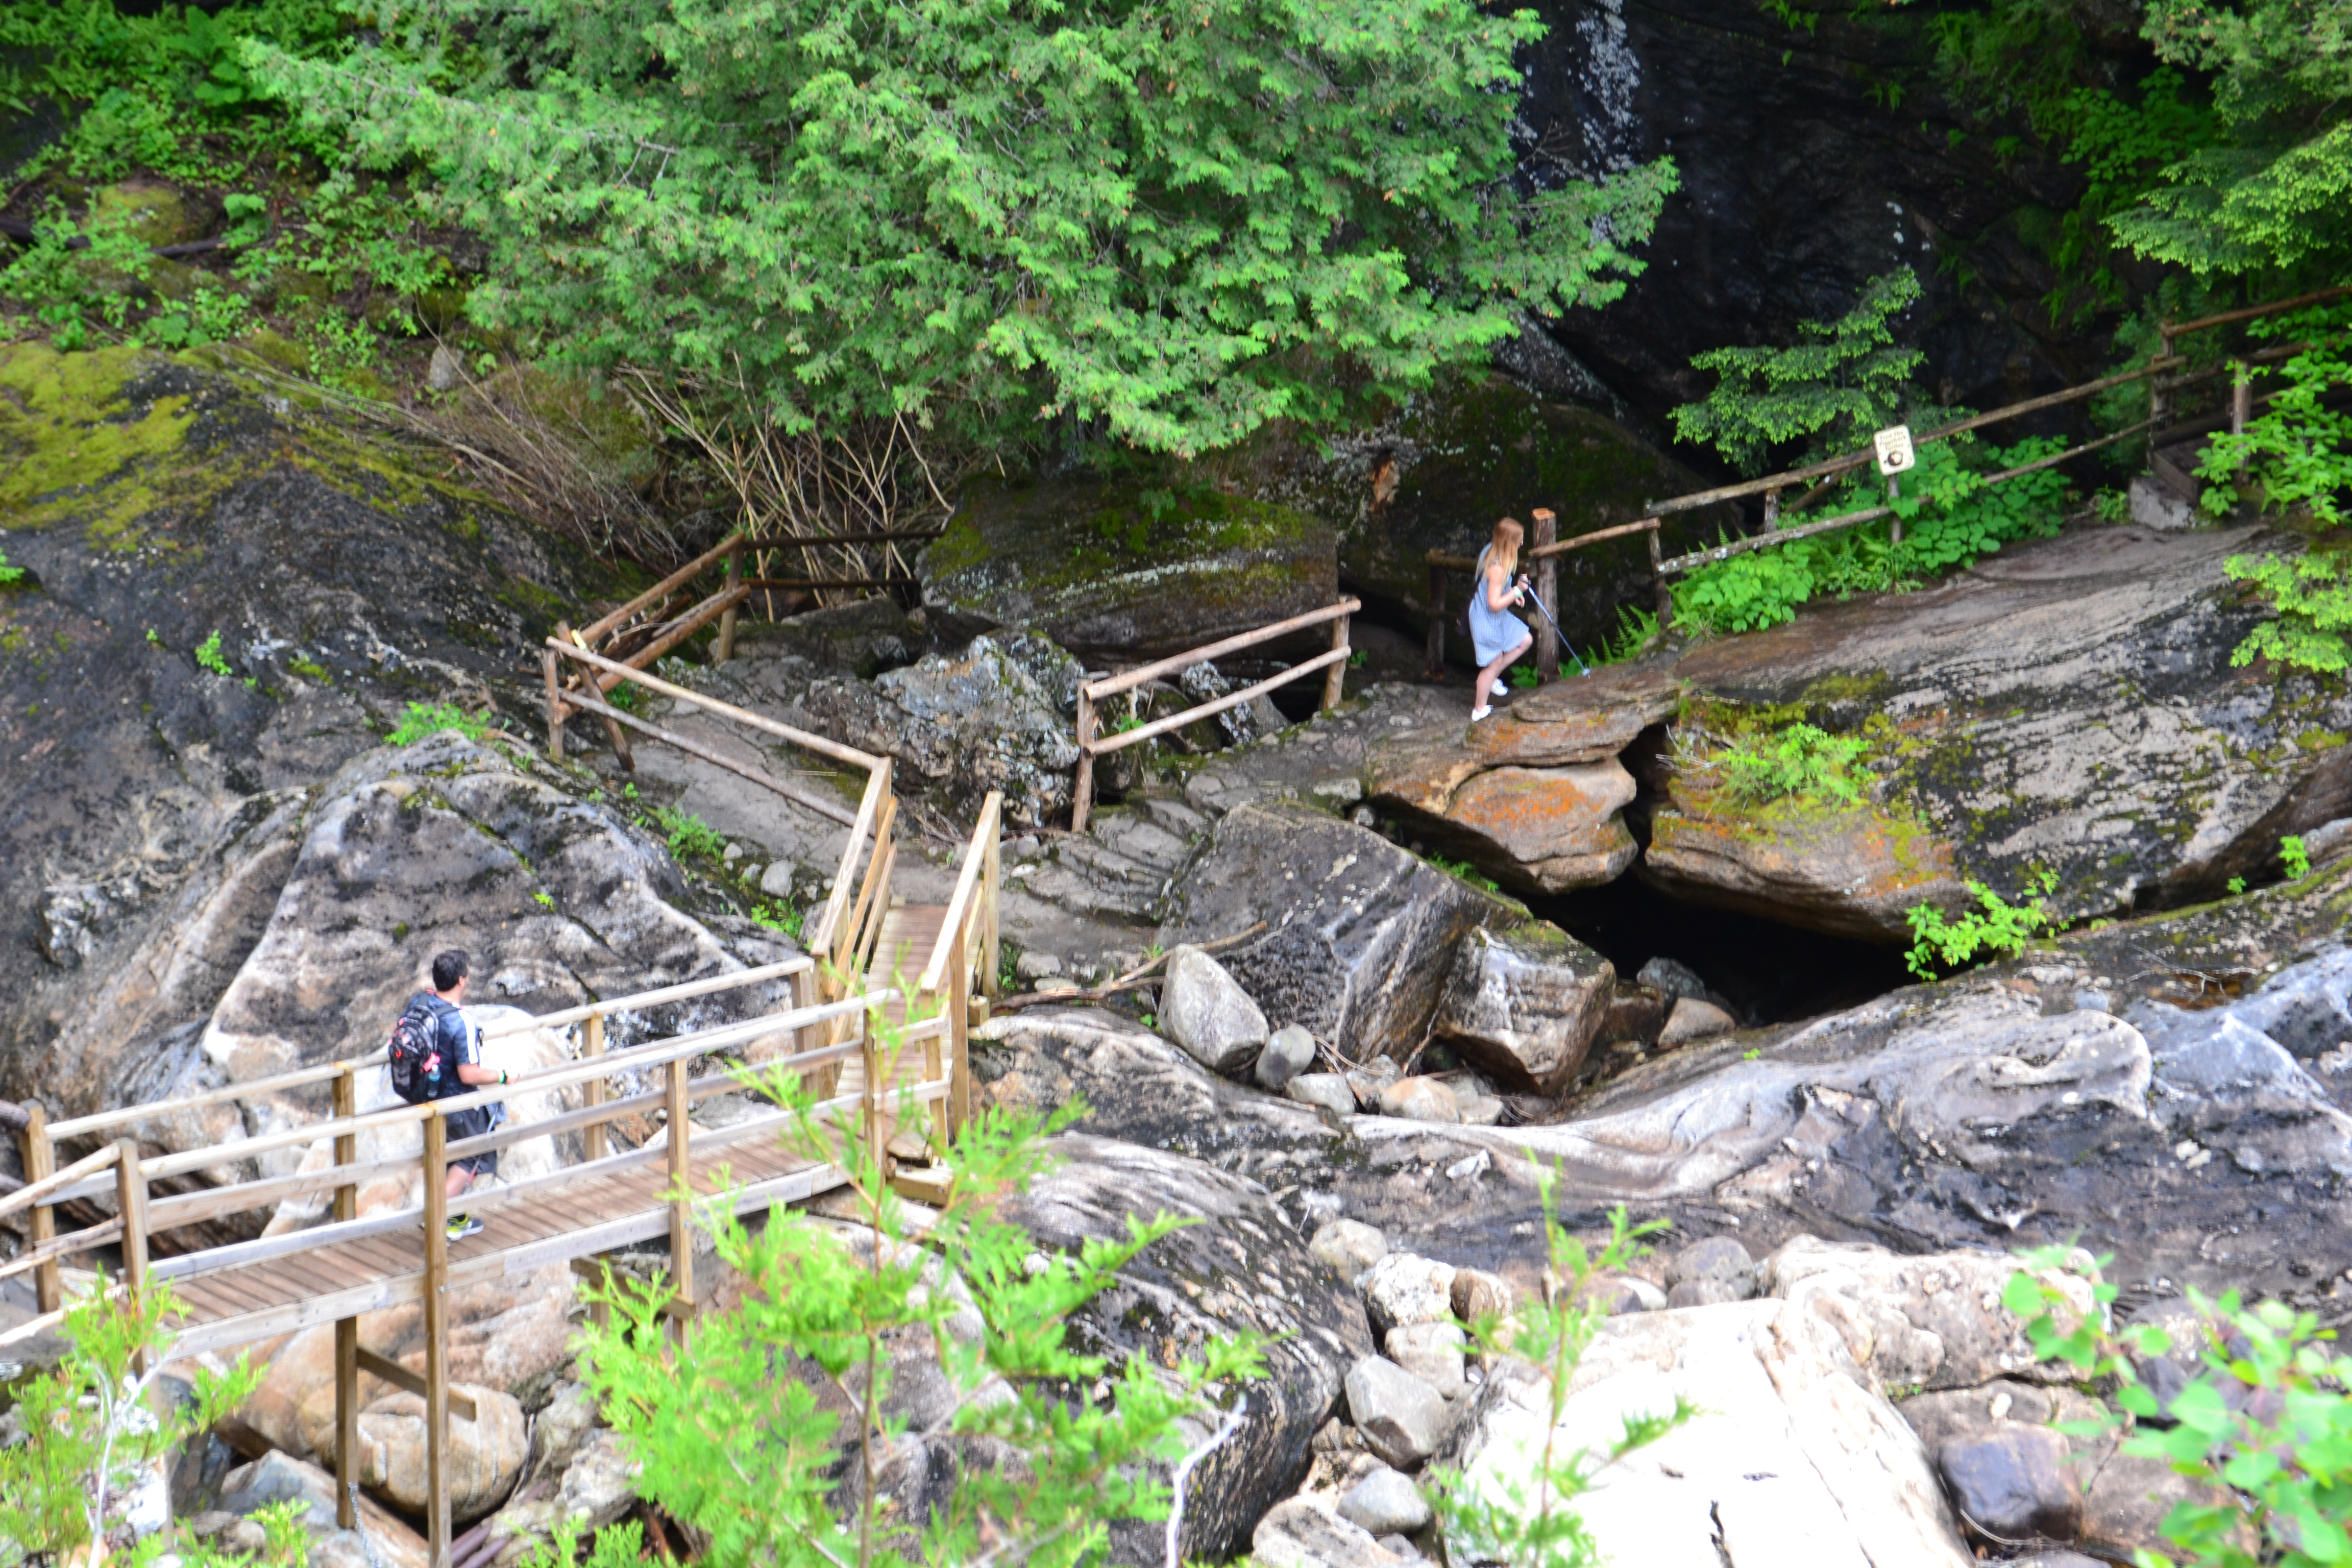 People Hiking at Natural Stone Bridge & Caves